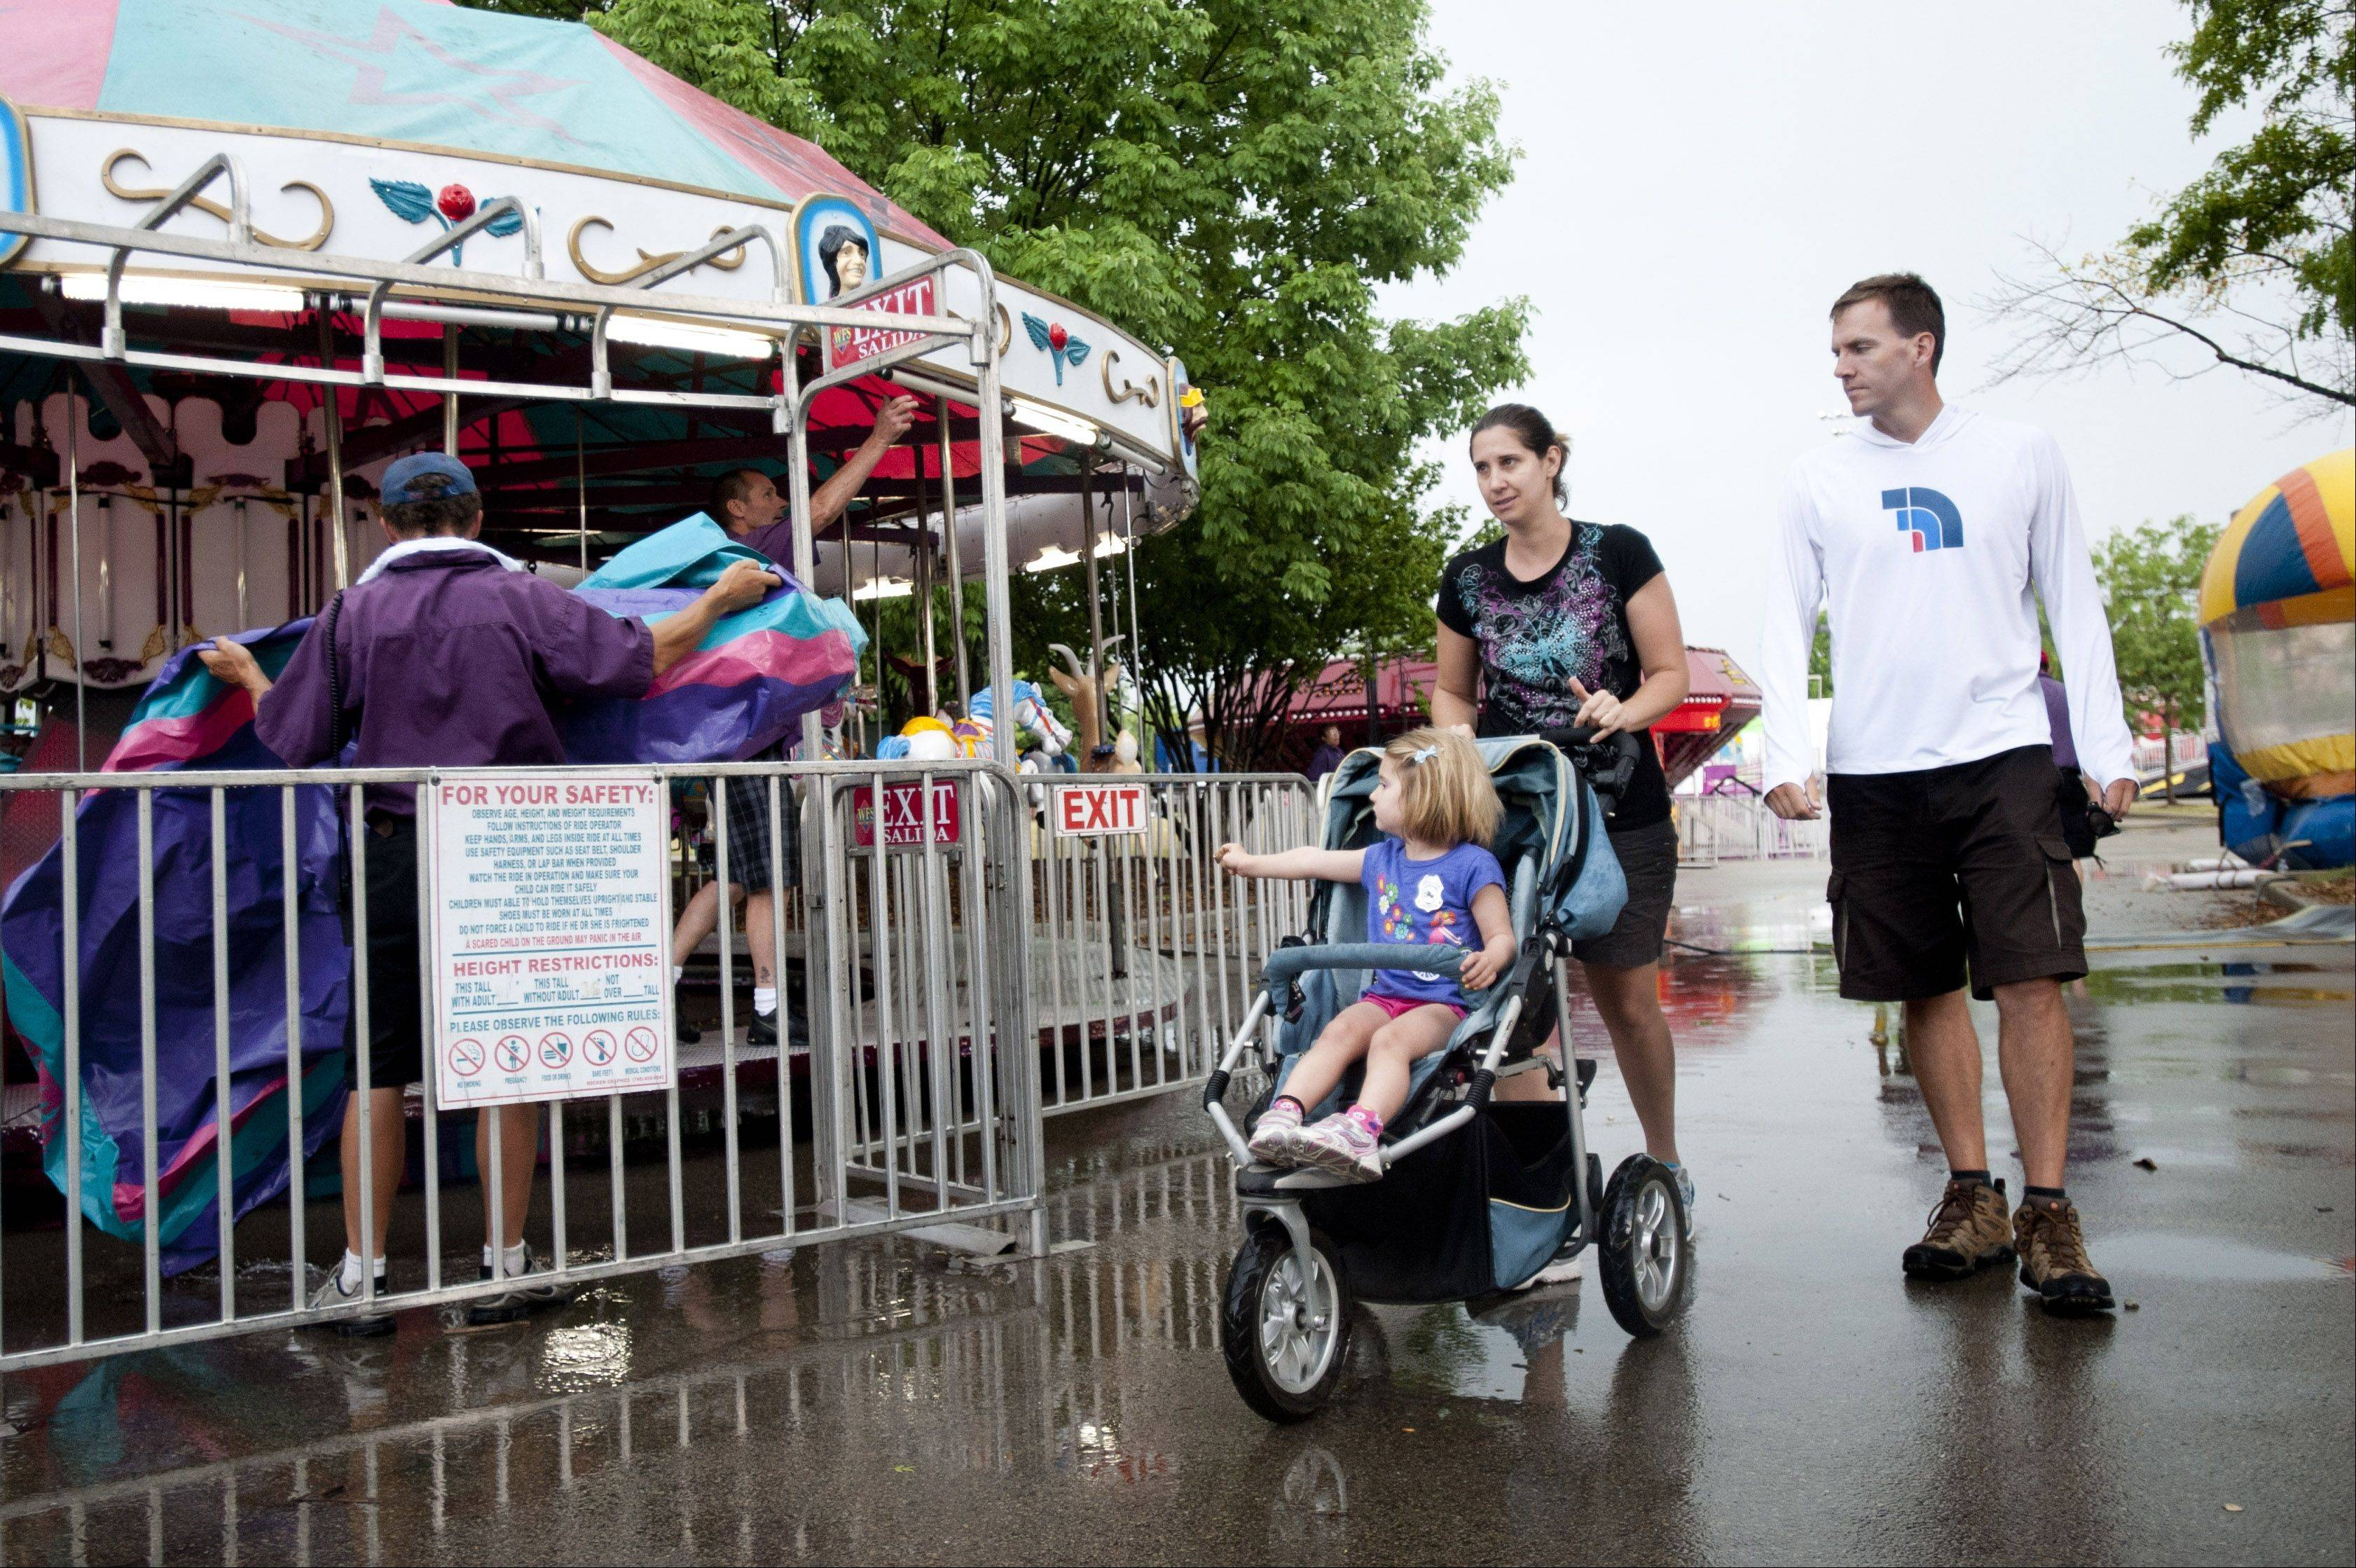 The Snart family strolls through an empty carnival after storms dumped rain on Lisle's Eye to Skies Festival on Sunday.